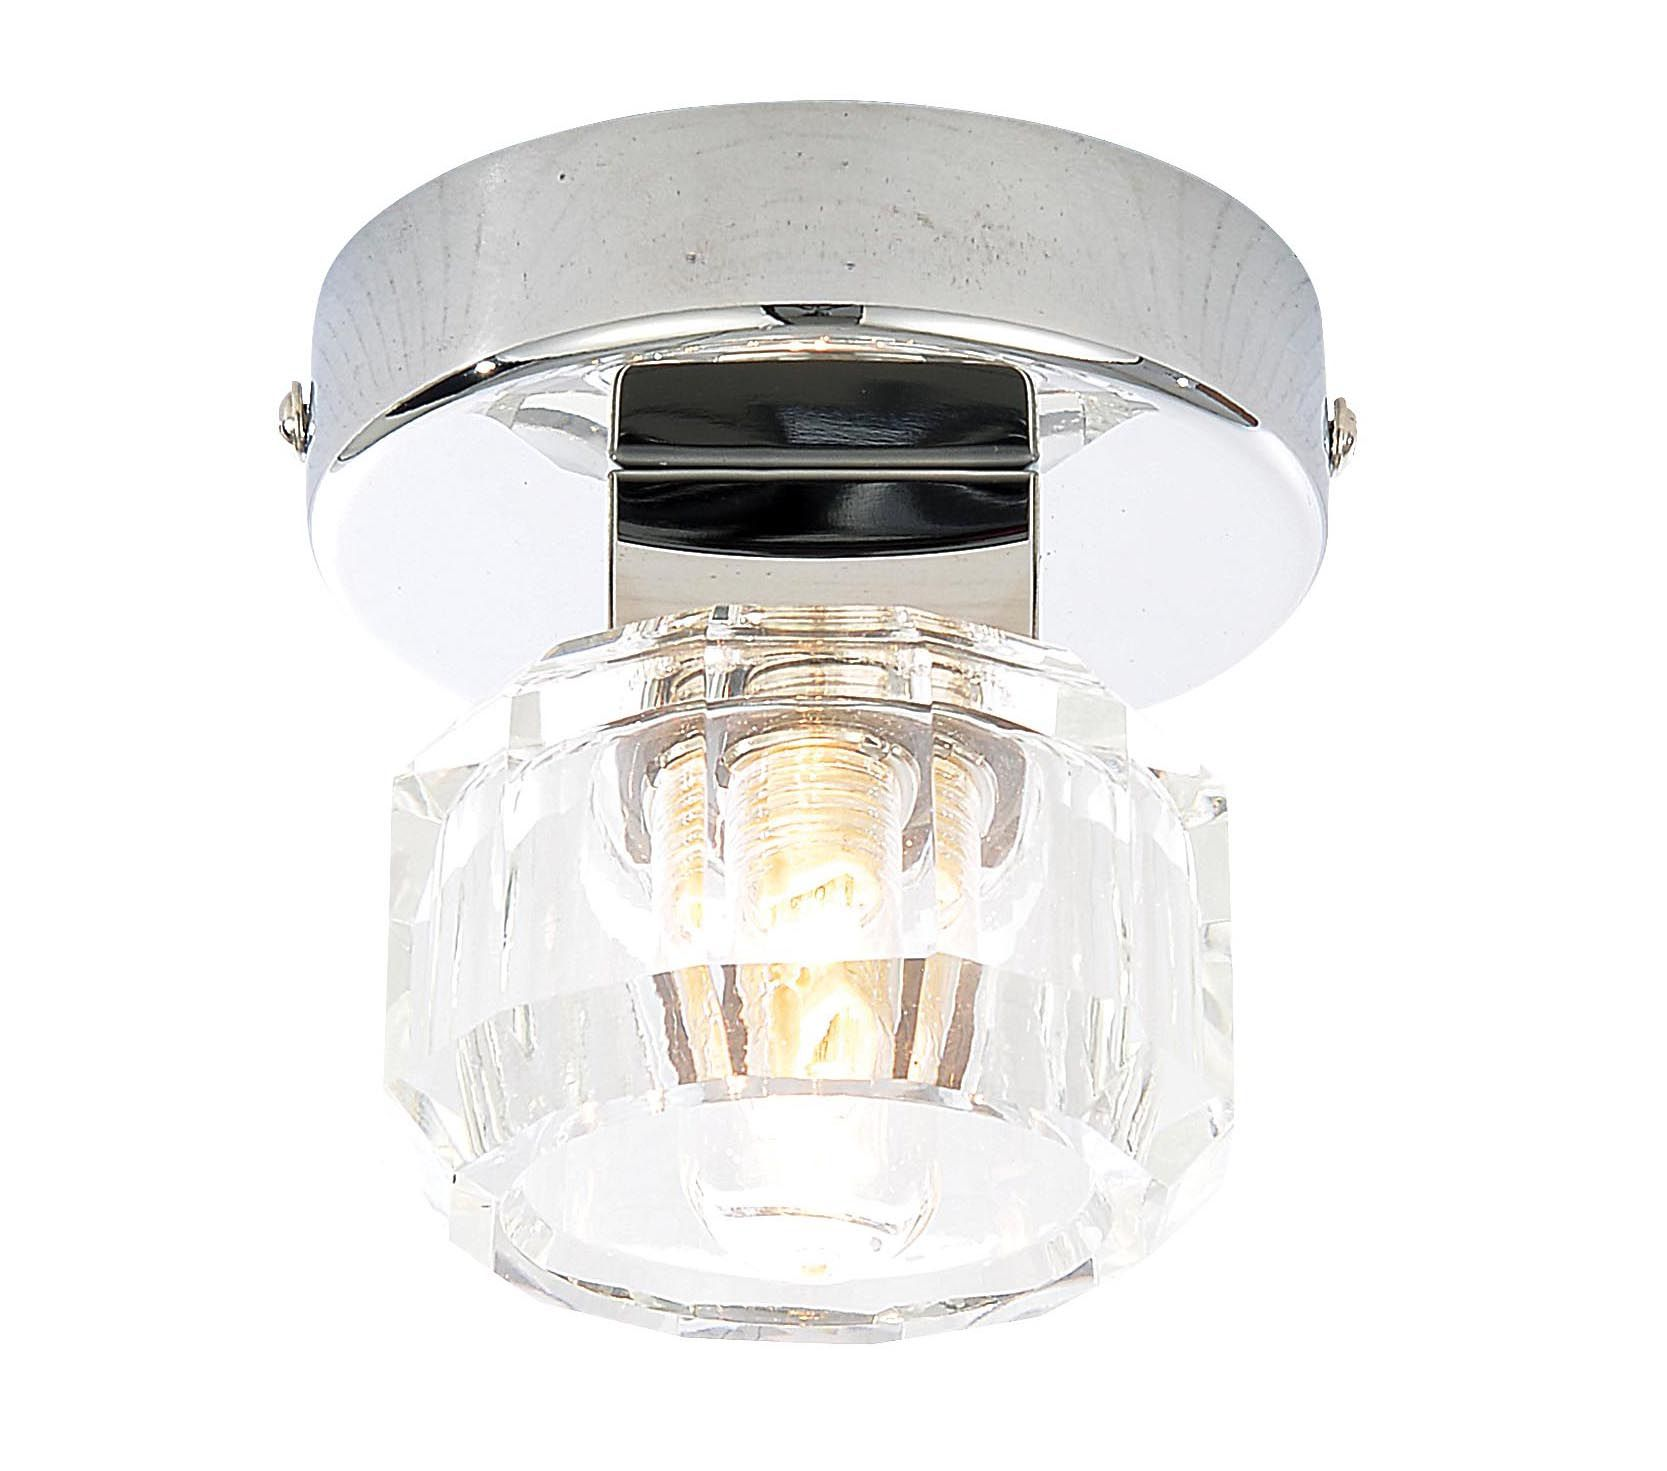 Apsley clear chrome effect bathroom ceiling light for B q bathroom lights